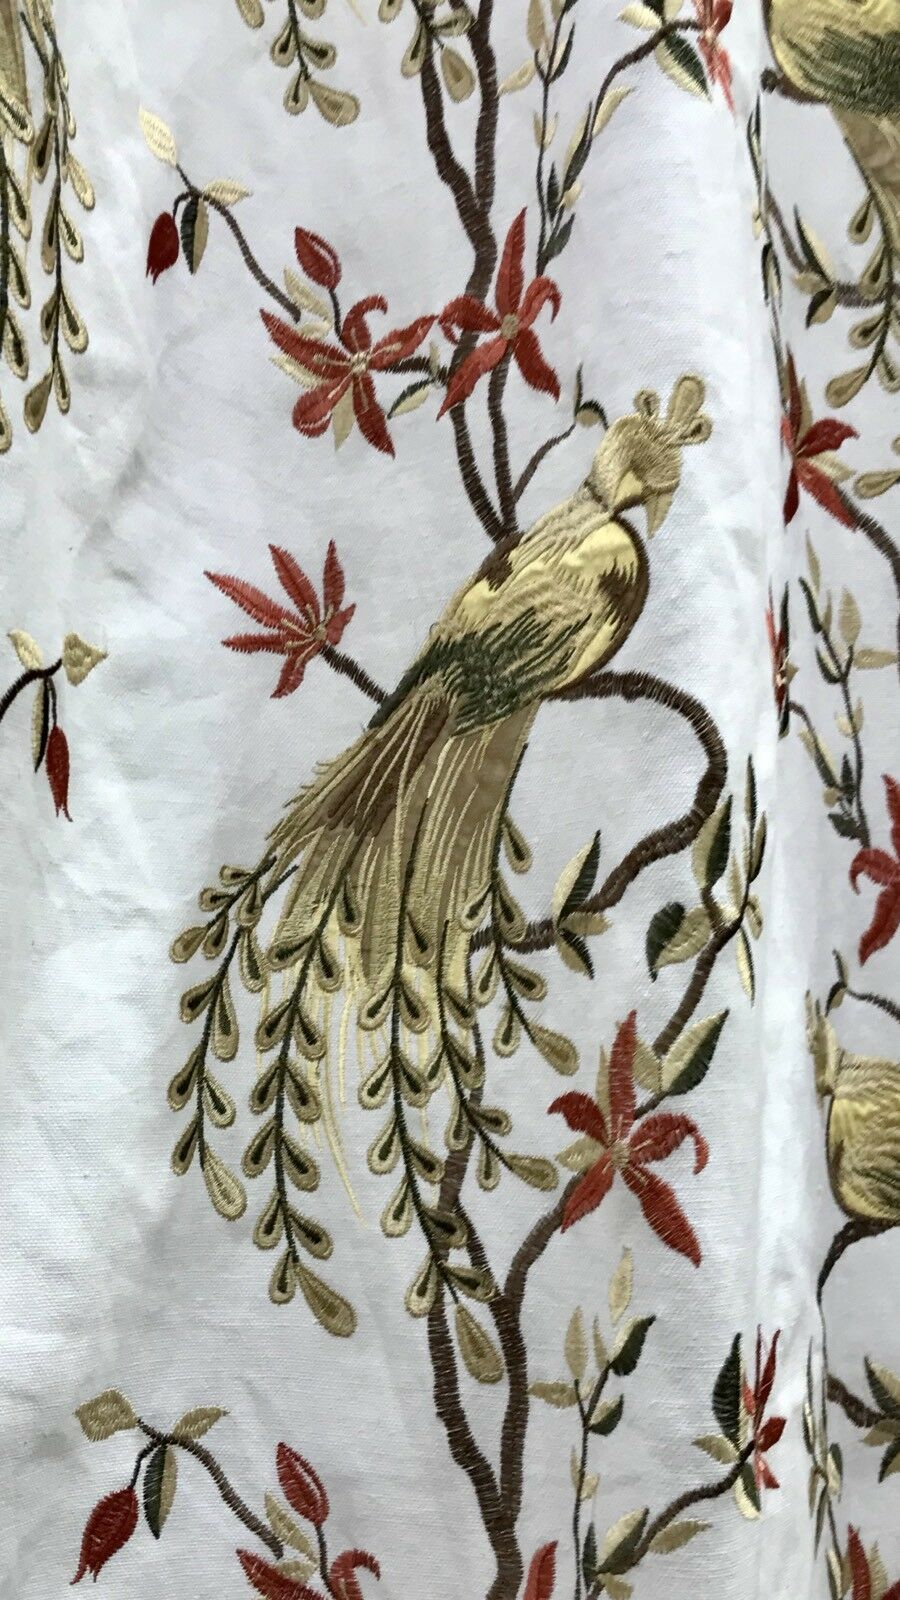 NEW! Designer Cotton Embroidered Peacock Drapery Fabric  - White